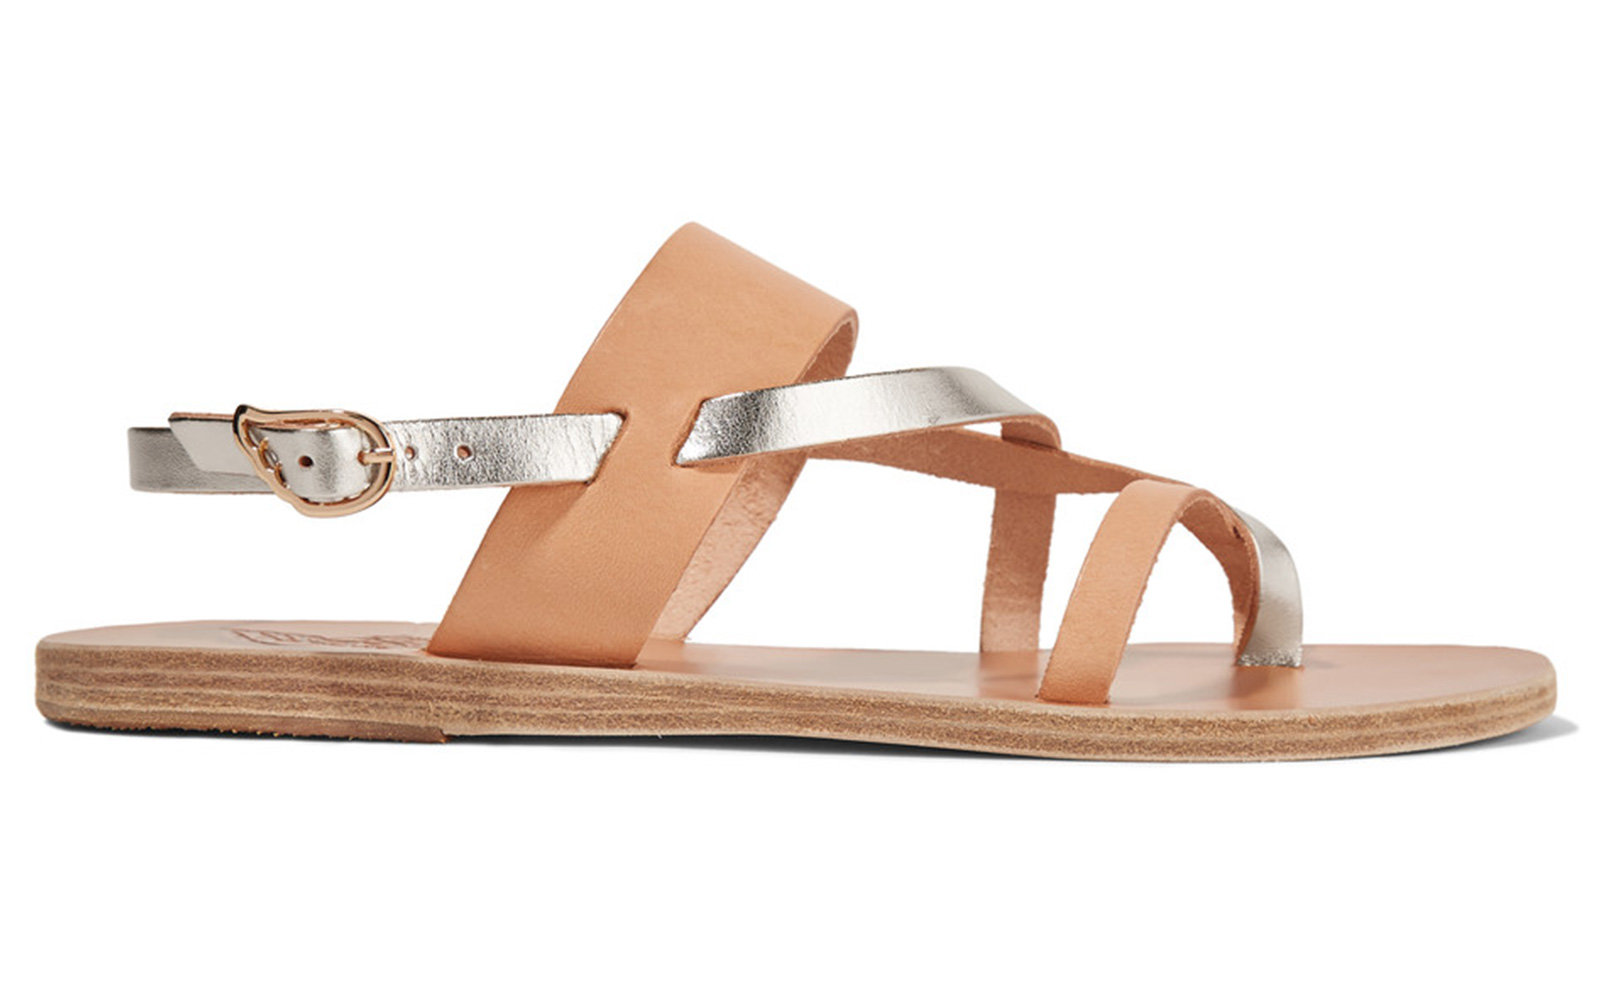 fa611ef68c3f Alethea Leather Sandals Ancient Greek Sandals. Beach Vacation Sandals